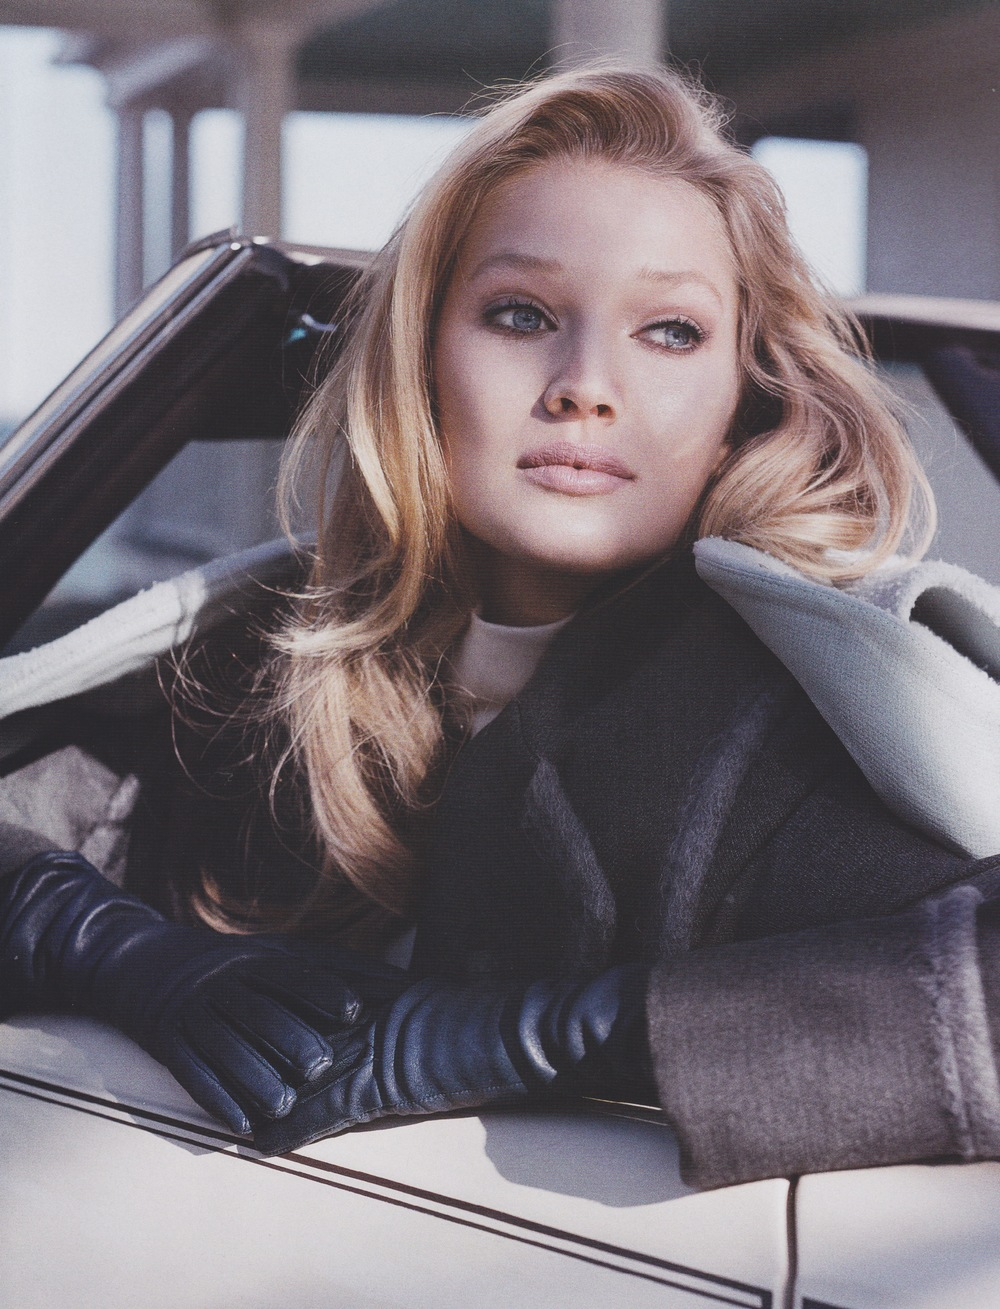 toni garrn photo shoot for vogue ukraine by benny horne and county fair productions 4